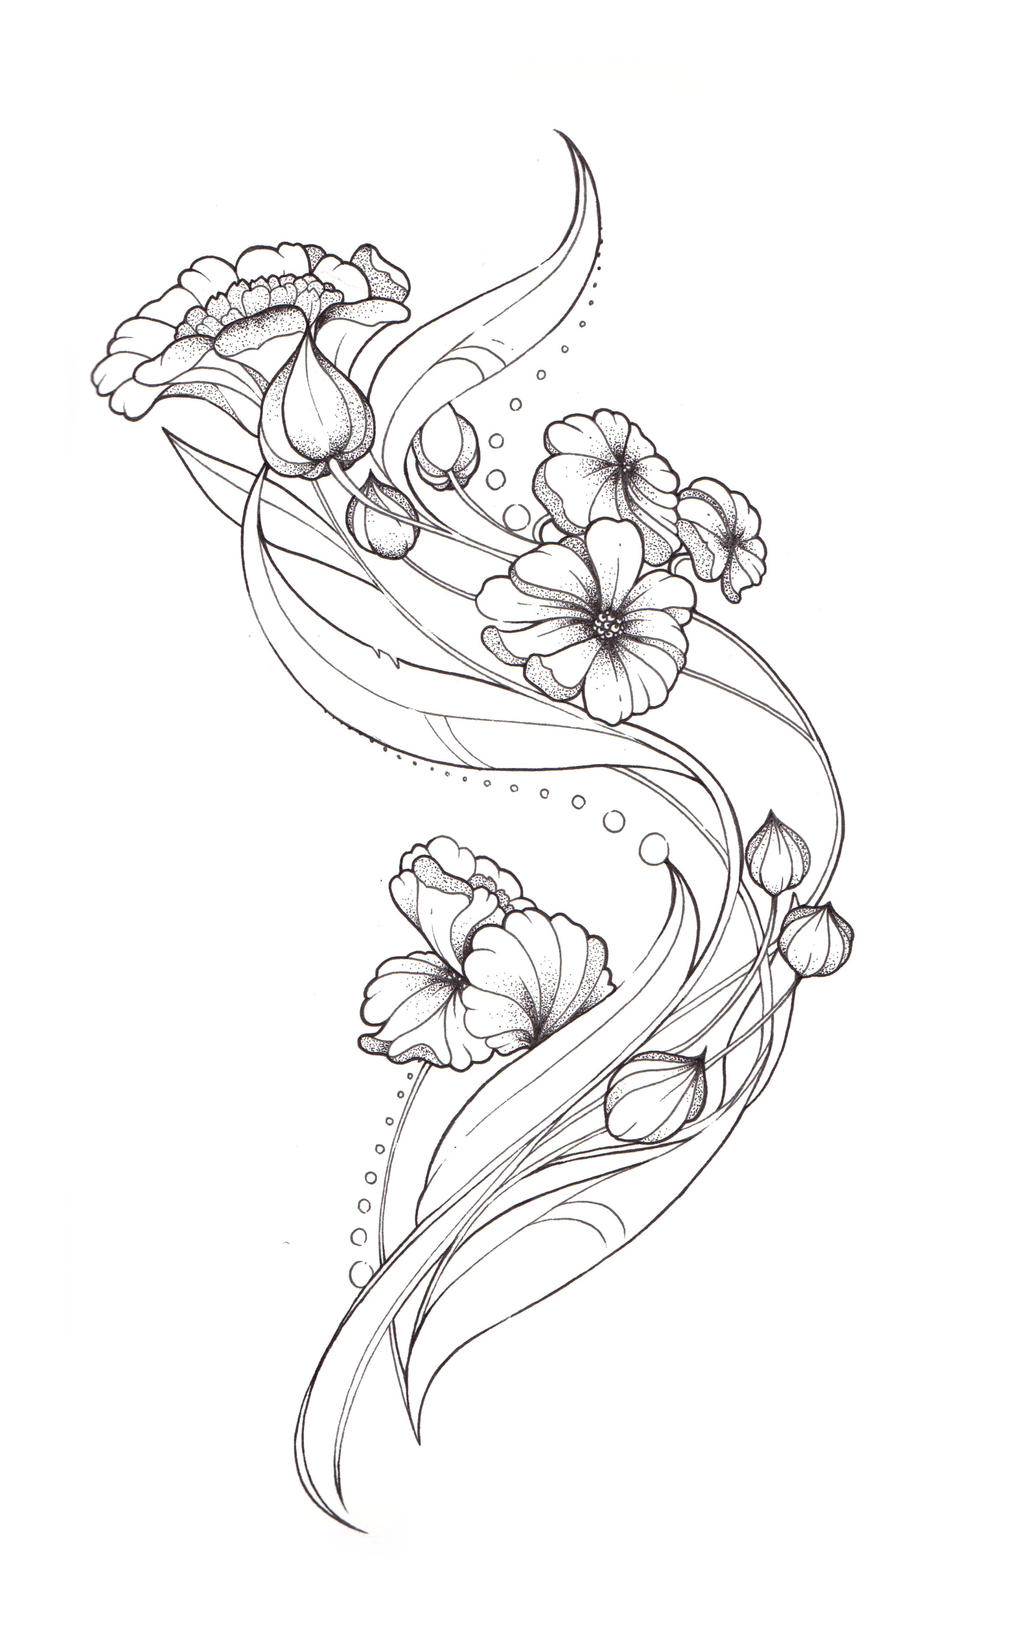 Art Nouveau Tattoo Design By Tegan Ray Designs Interfaces Tattoo